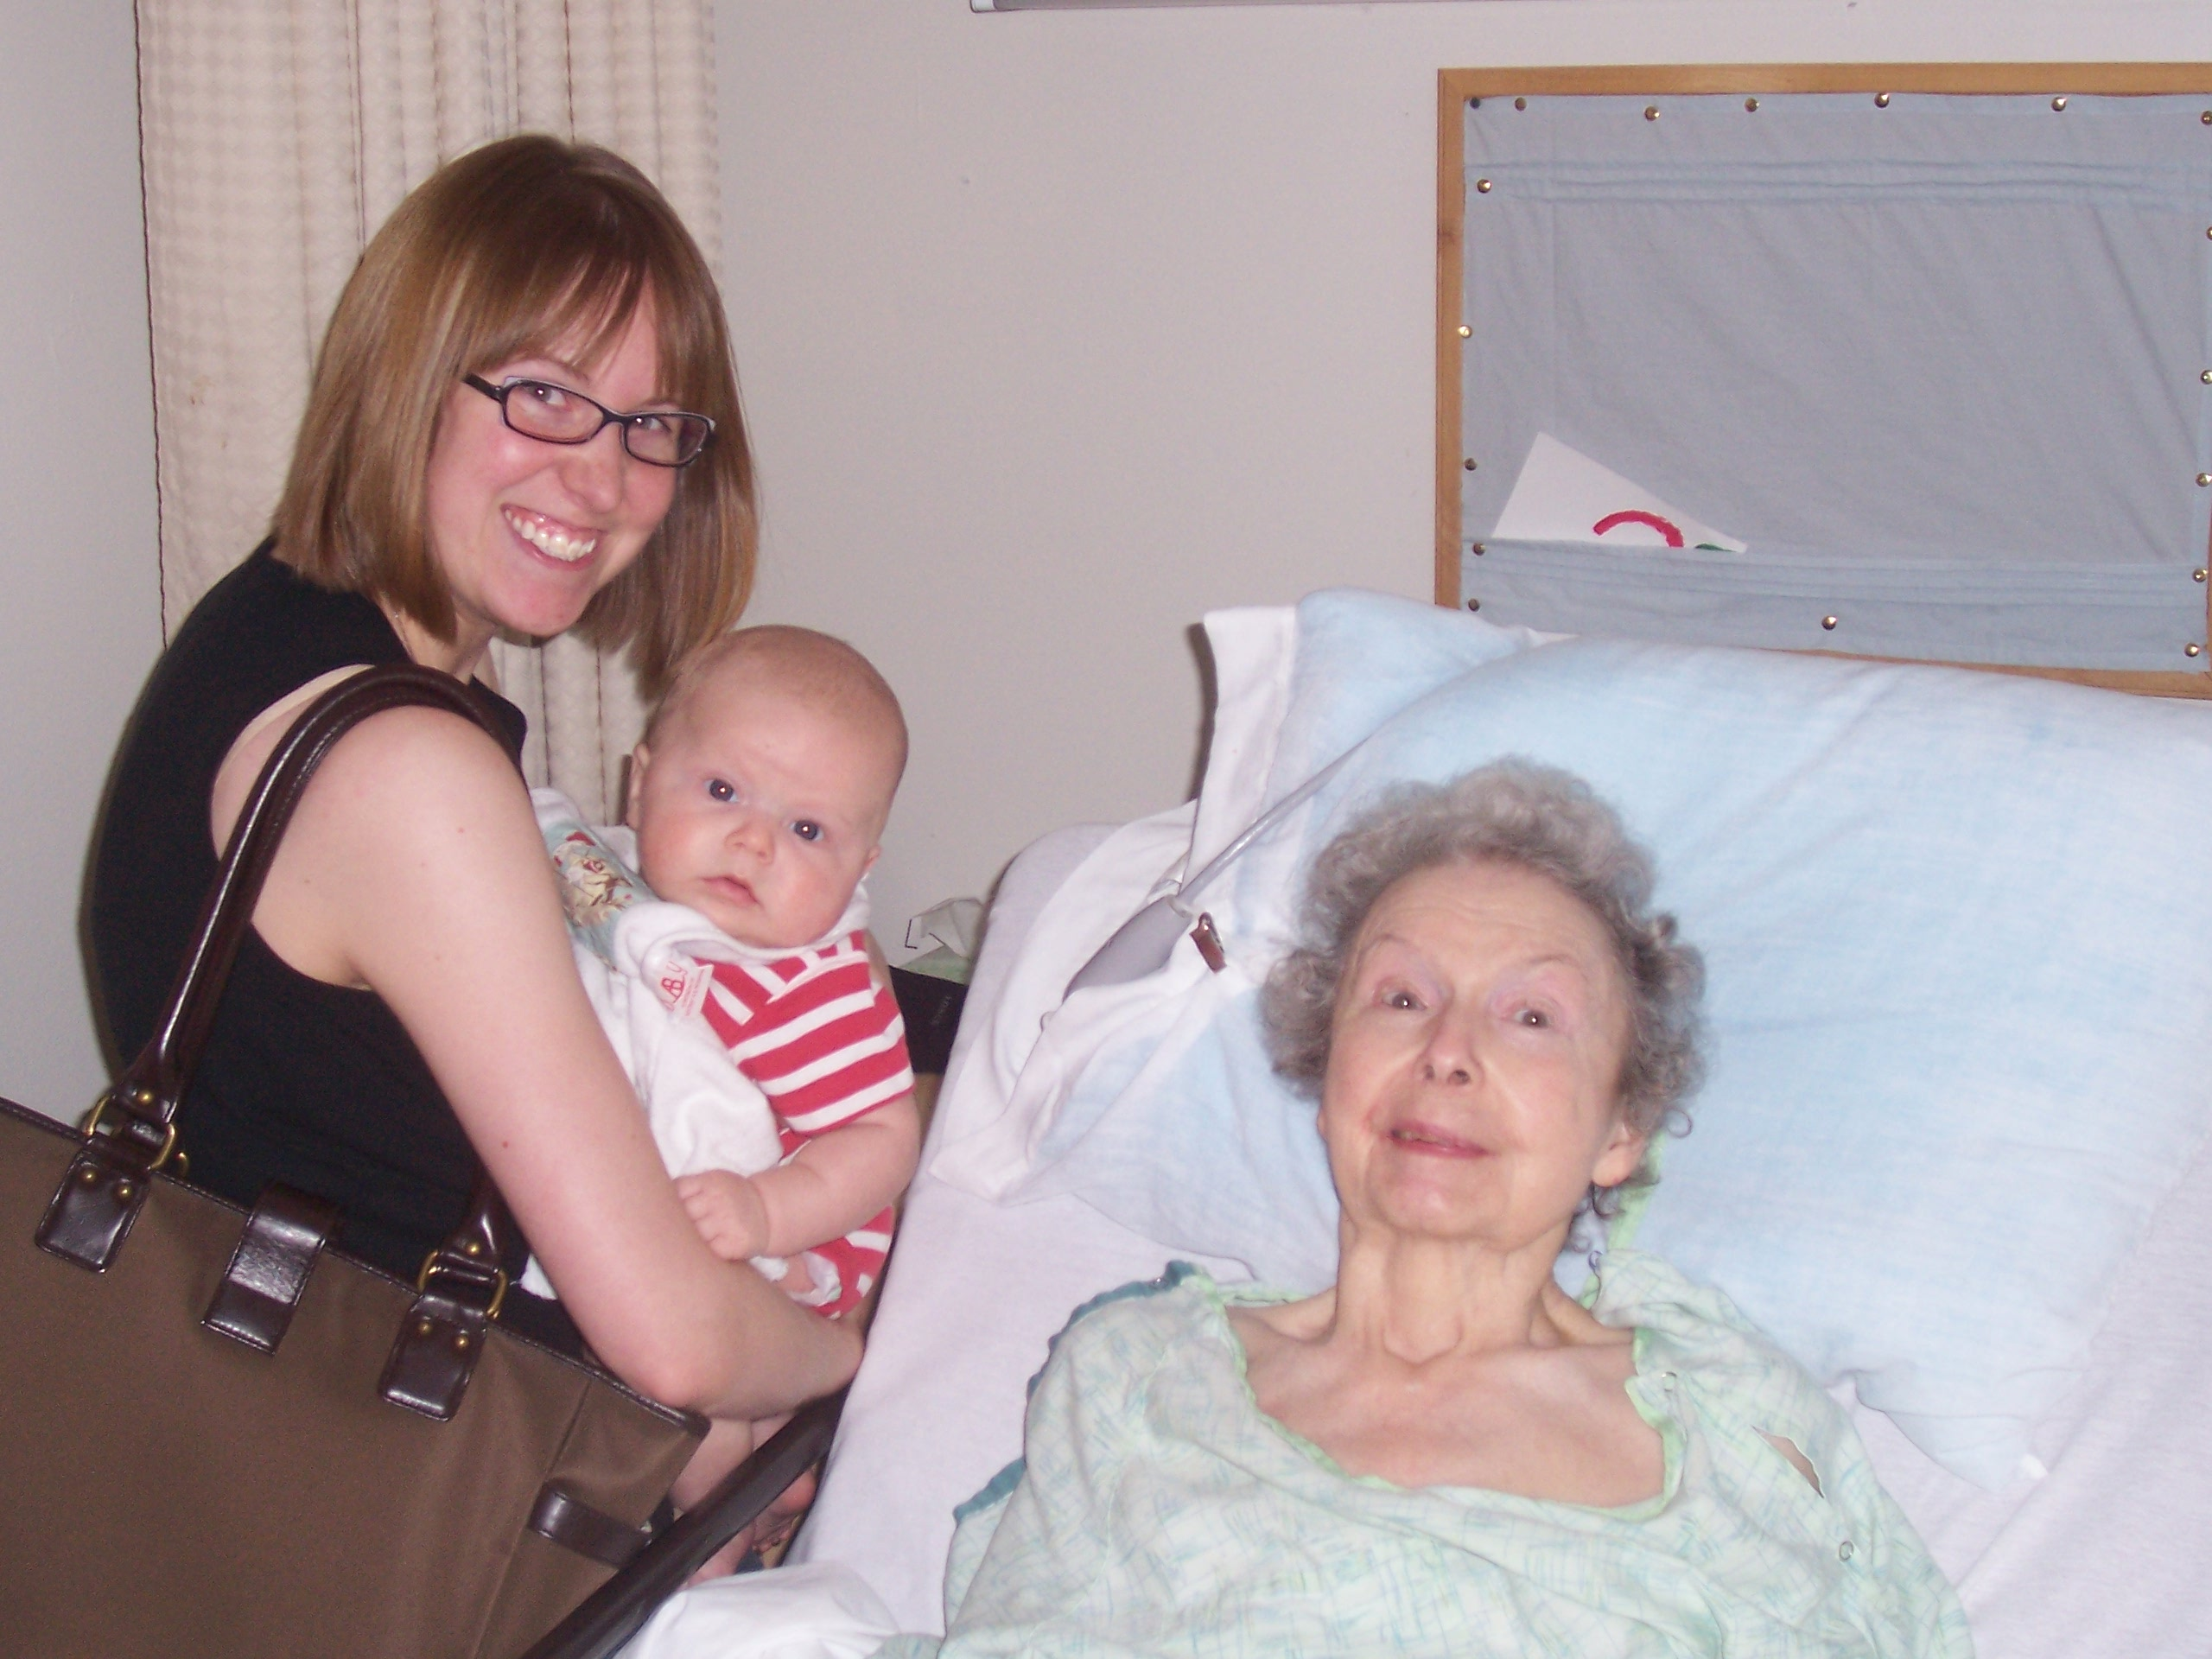 We took my grandson to see his great-grandmother in her nursing home -- her first great-grandchild. I think she got a kick out of him!